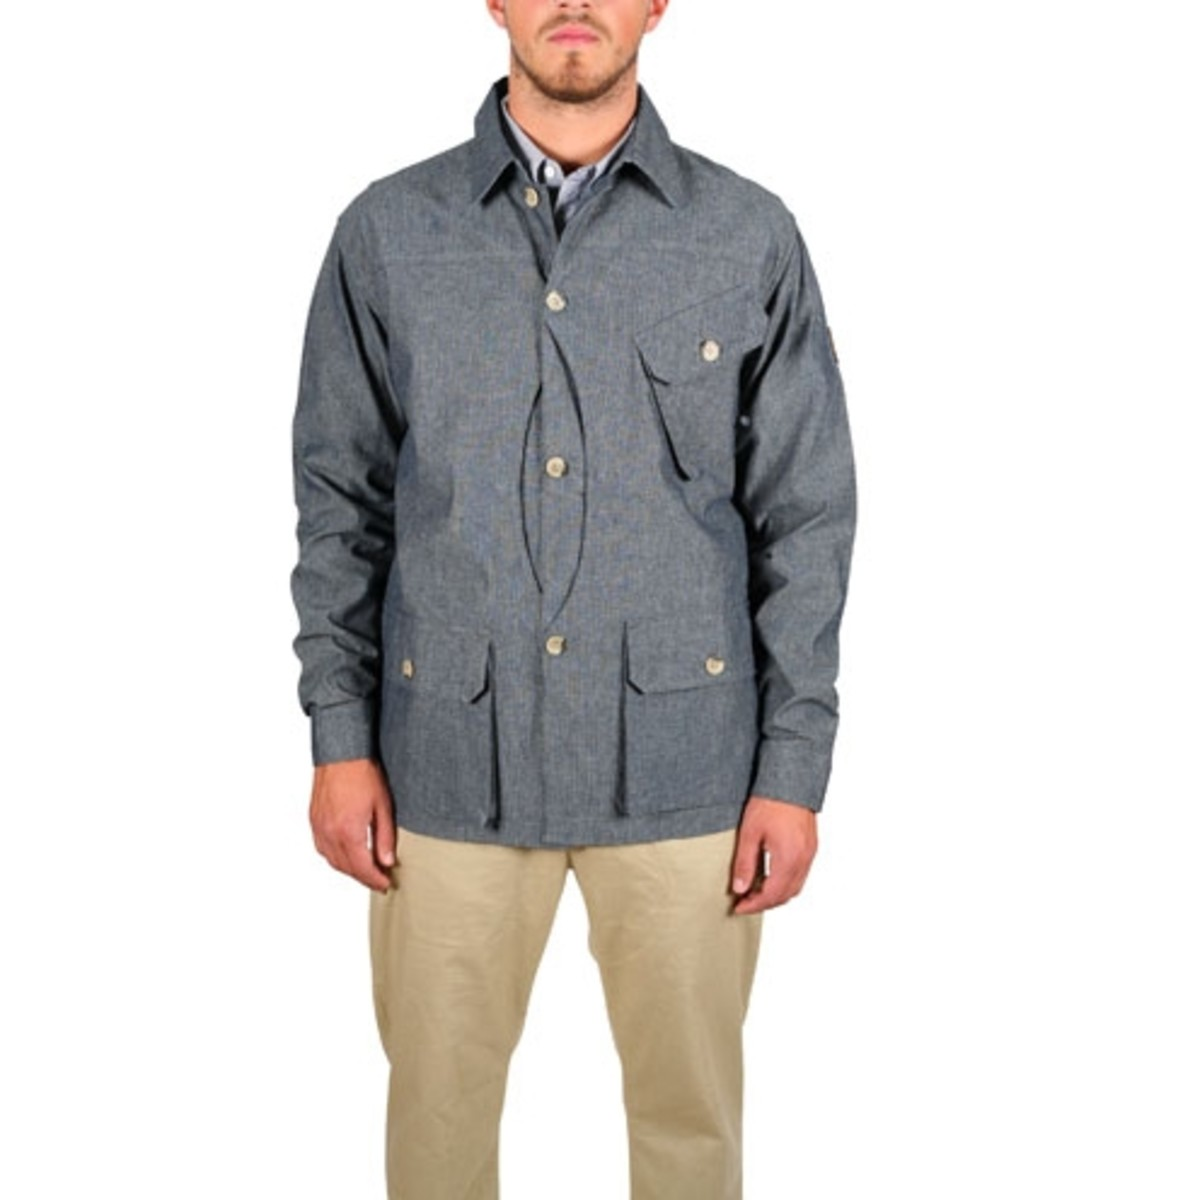 Penfield SS2011 Jackets 43